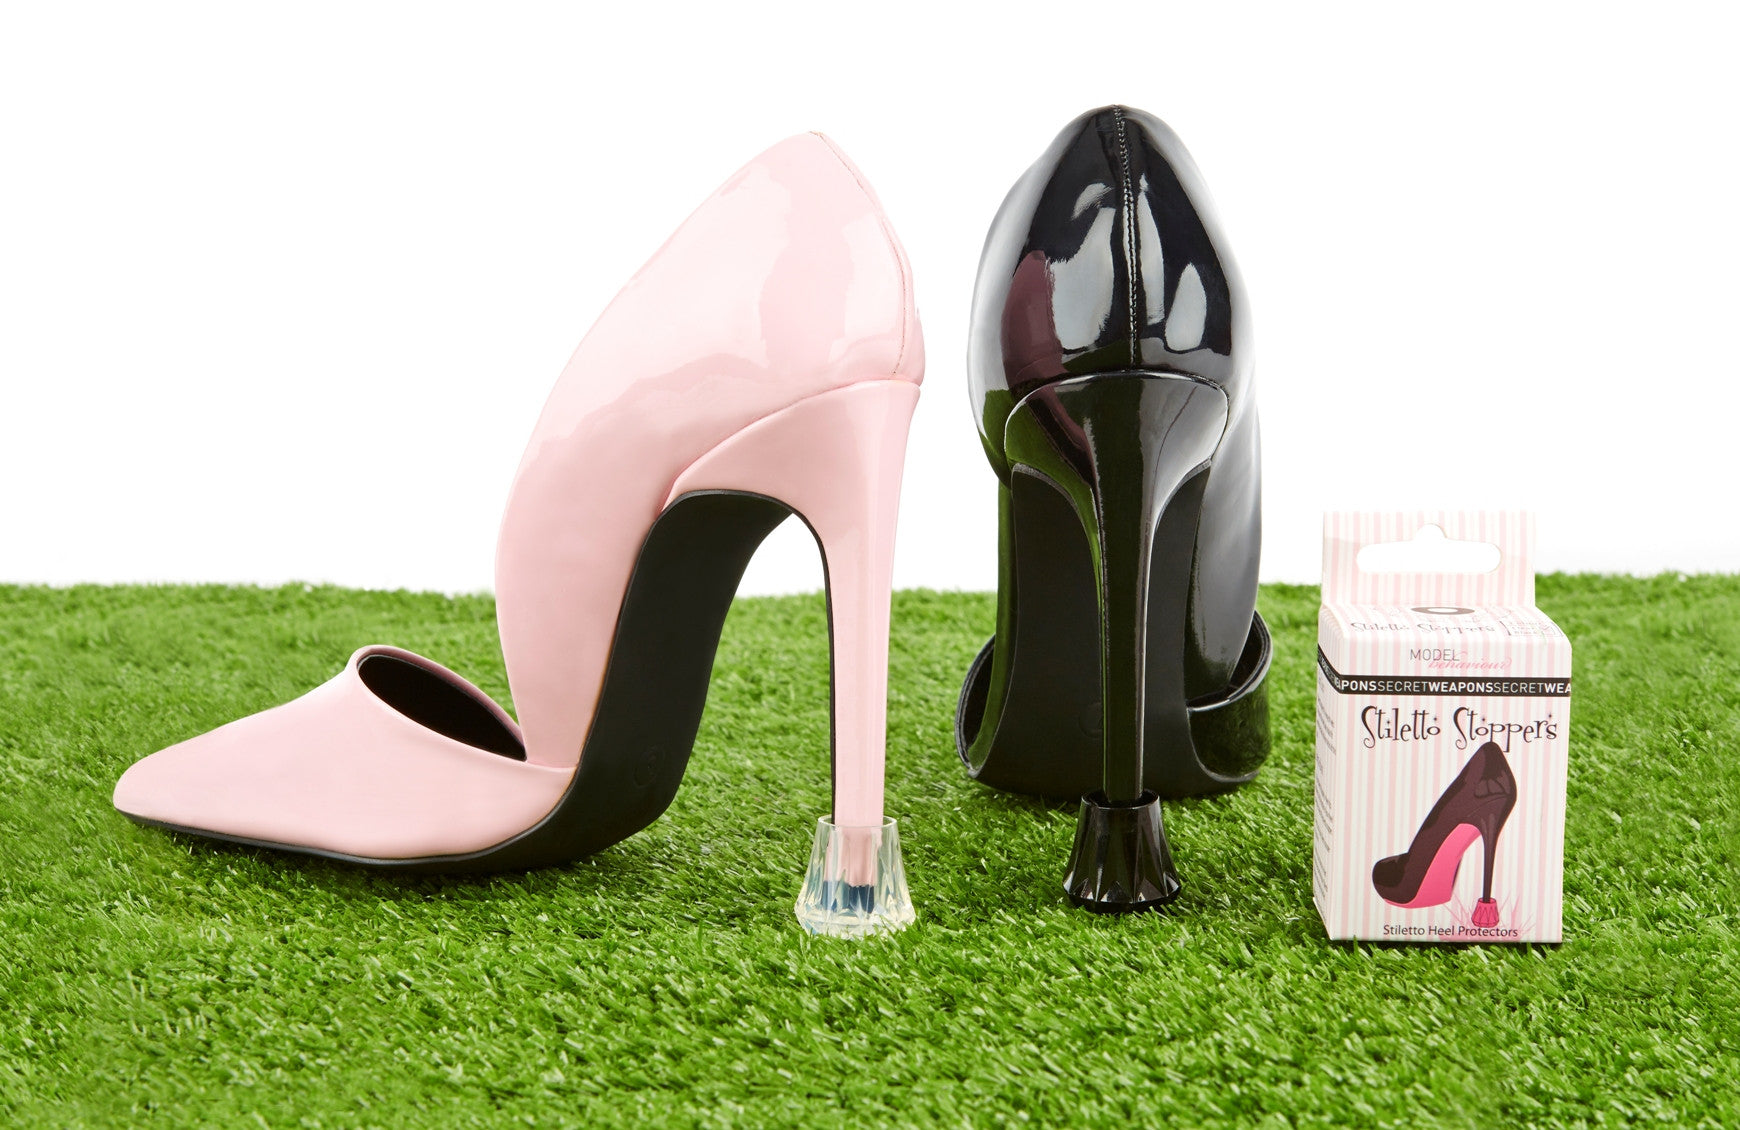 fd15b10fab5 High Heel Protectors - prevent stiletto shoes sinking in the grass ...